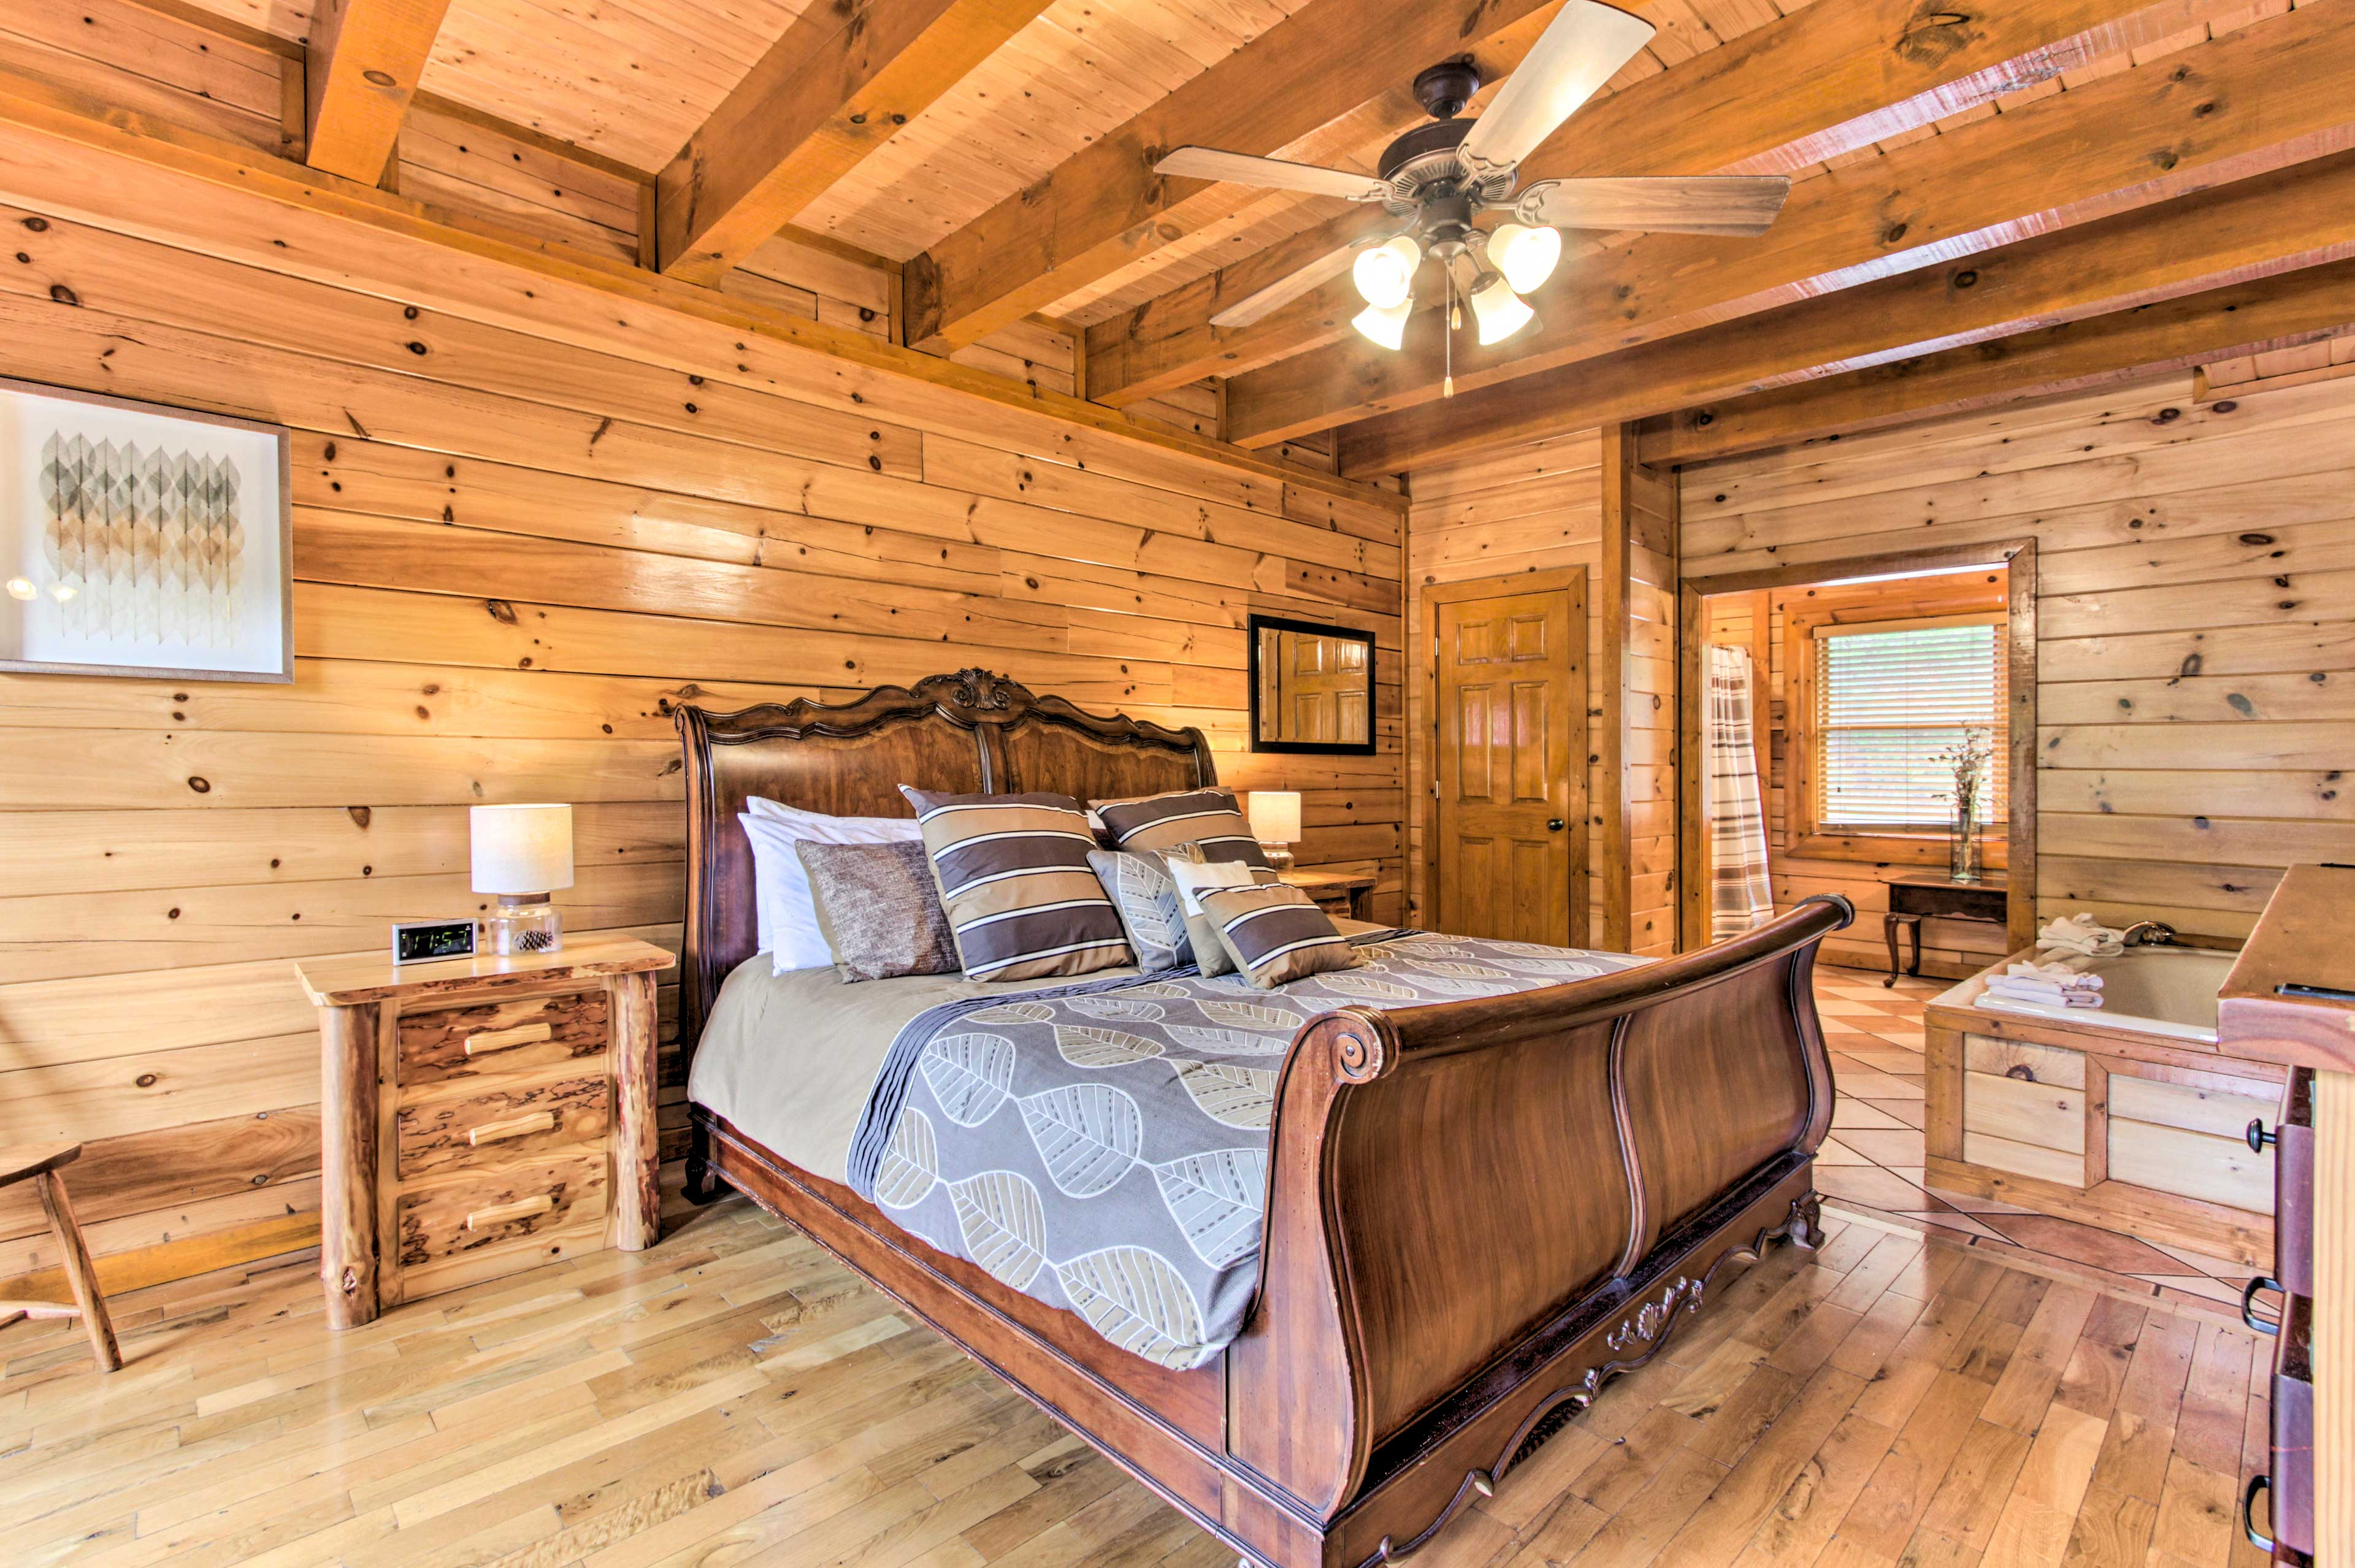 You get to choose from 5 bedrooms with king beds!